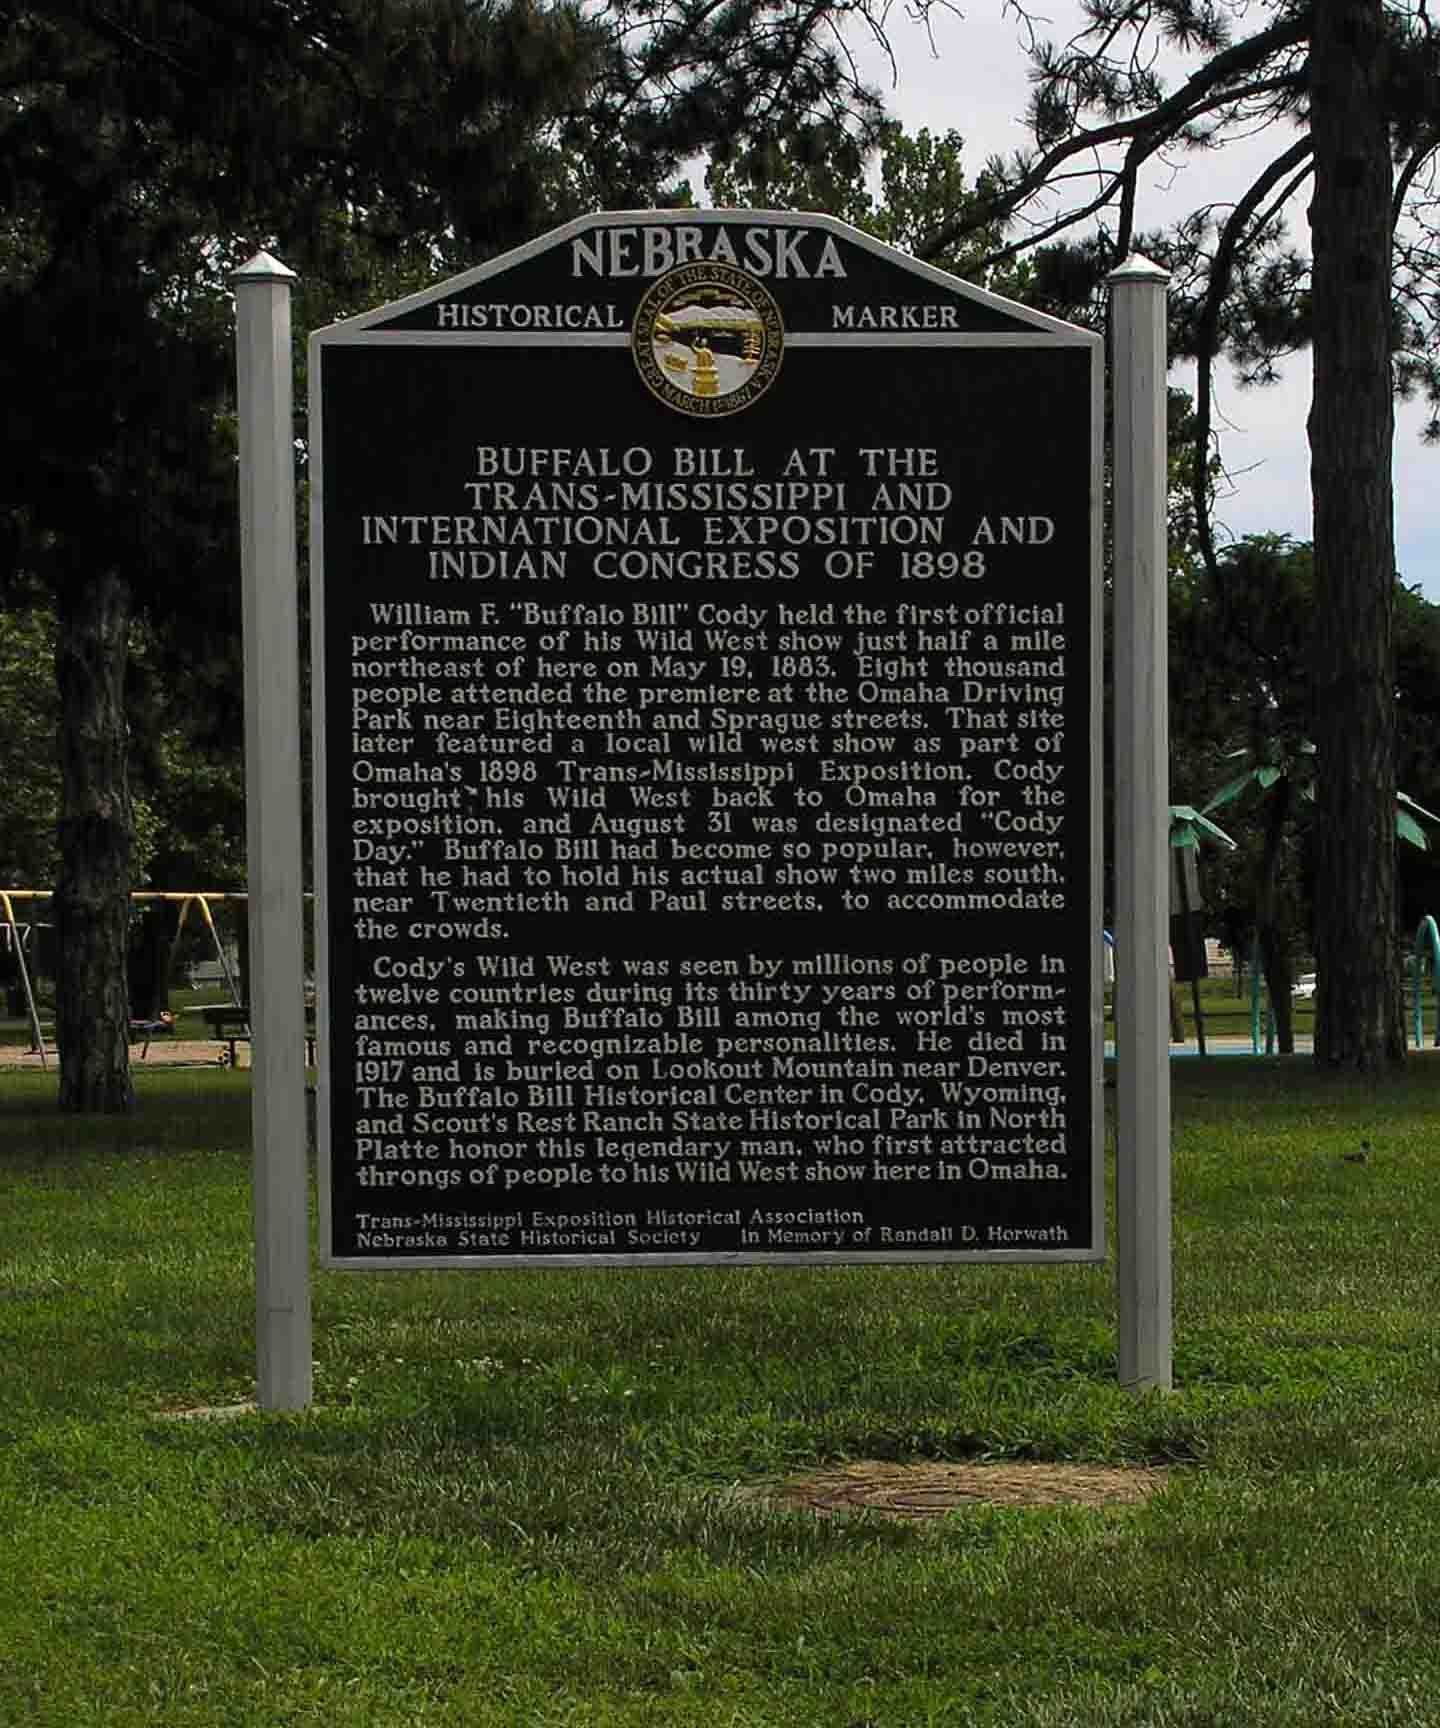 Buffalo Bill at the Trans-Mississippi and International Exposition and Indian Congress of 1898 Marker